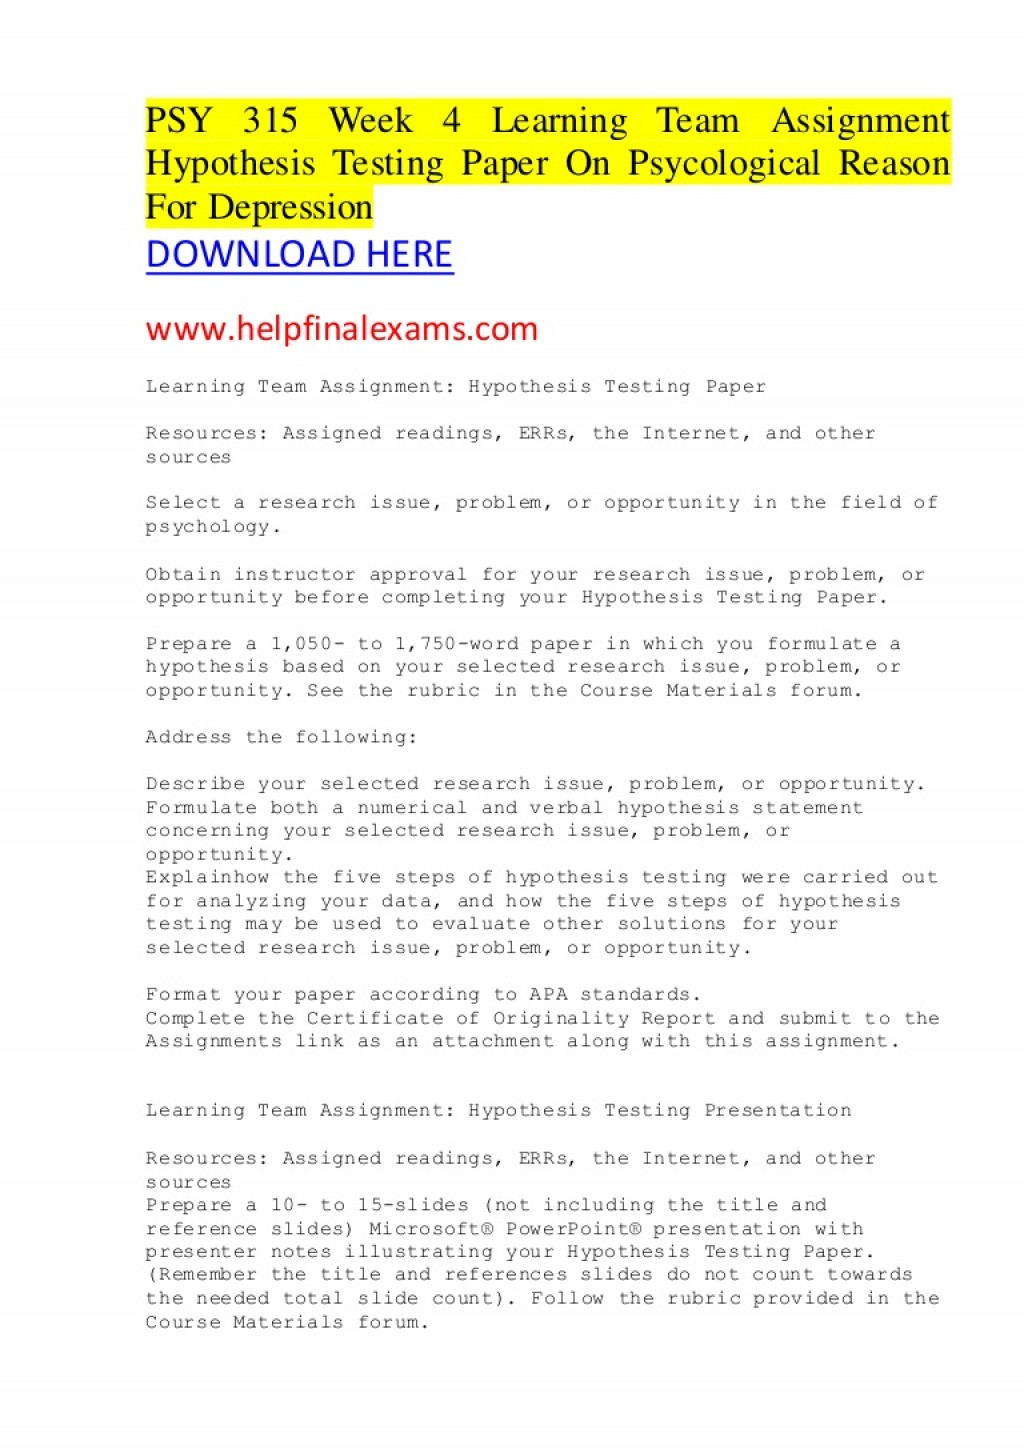 016 Hypothesis Testing In Research Paper Psy315week4learningteamassignmenthypothesistestingpaperonpsycologicalreasonfordepression Thumbnail Awesome Pdf Large